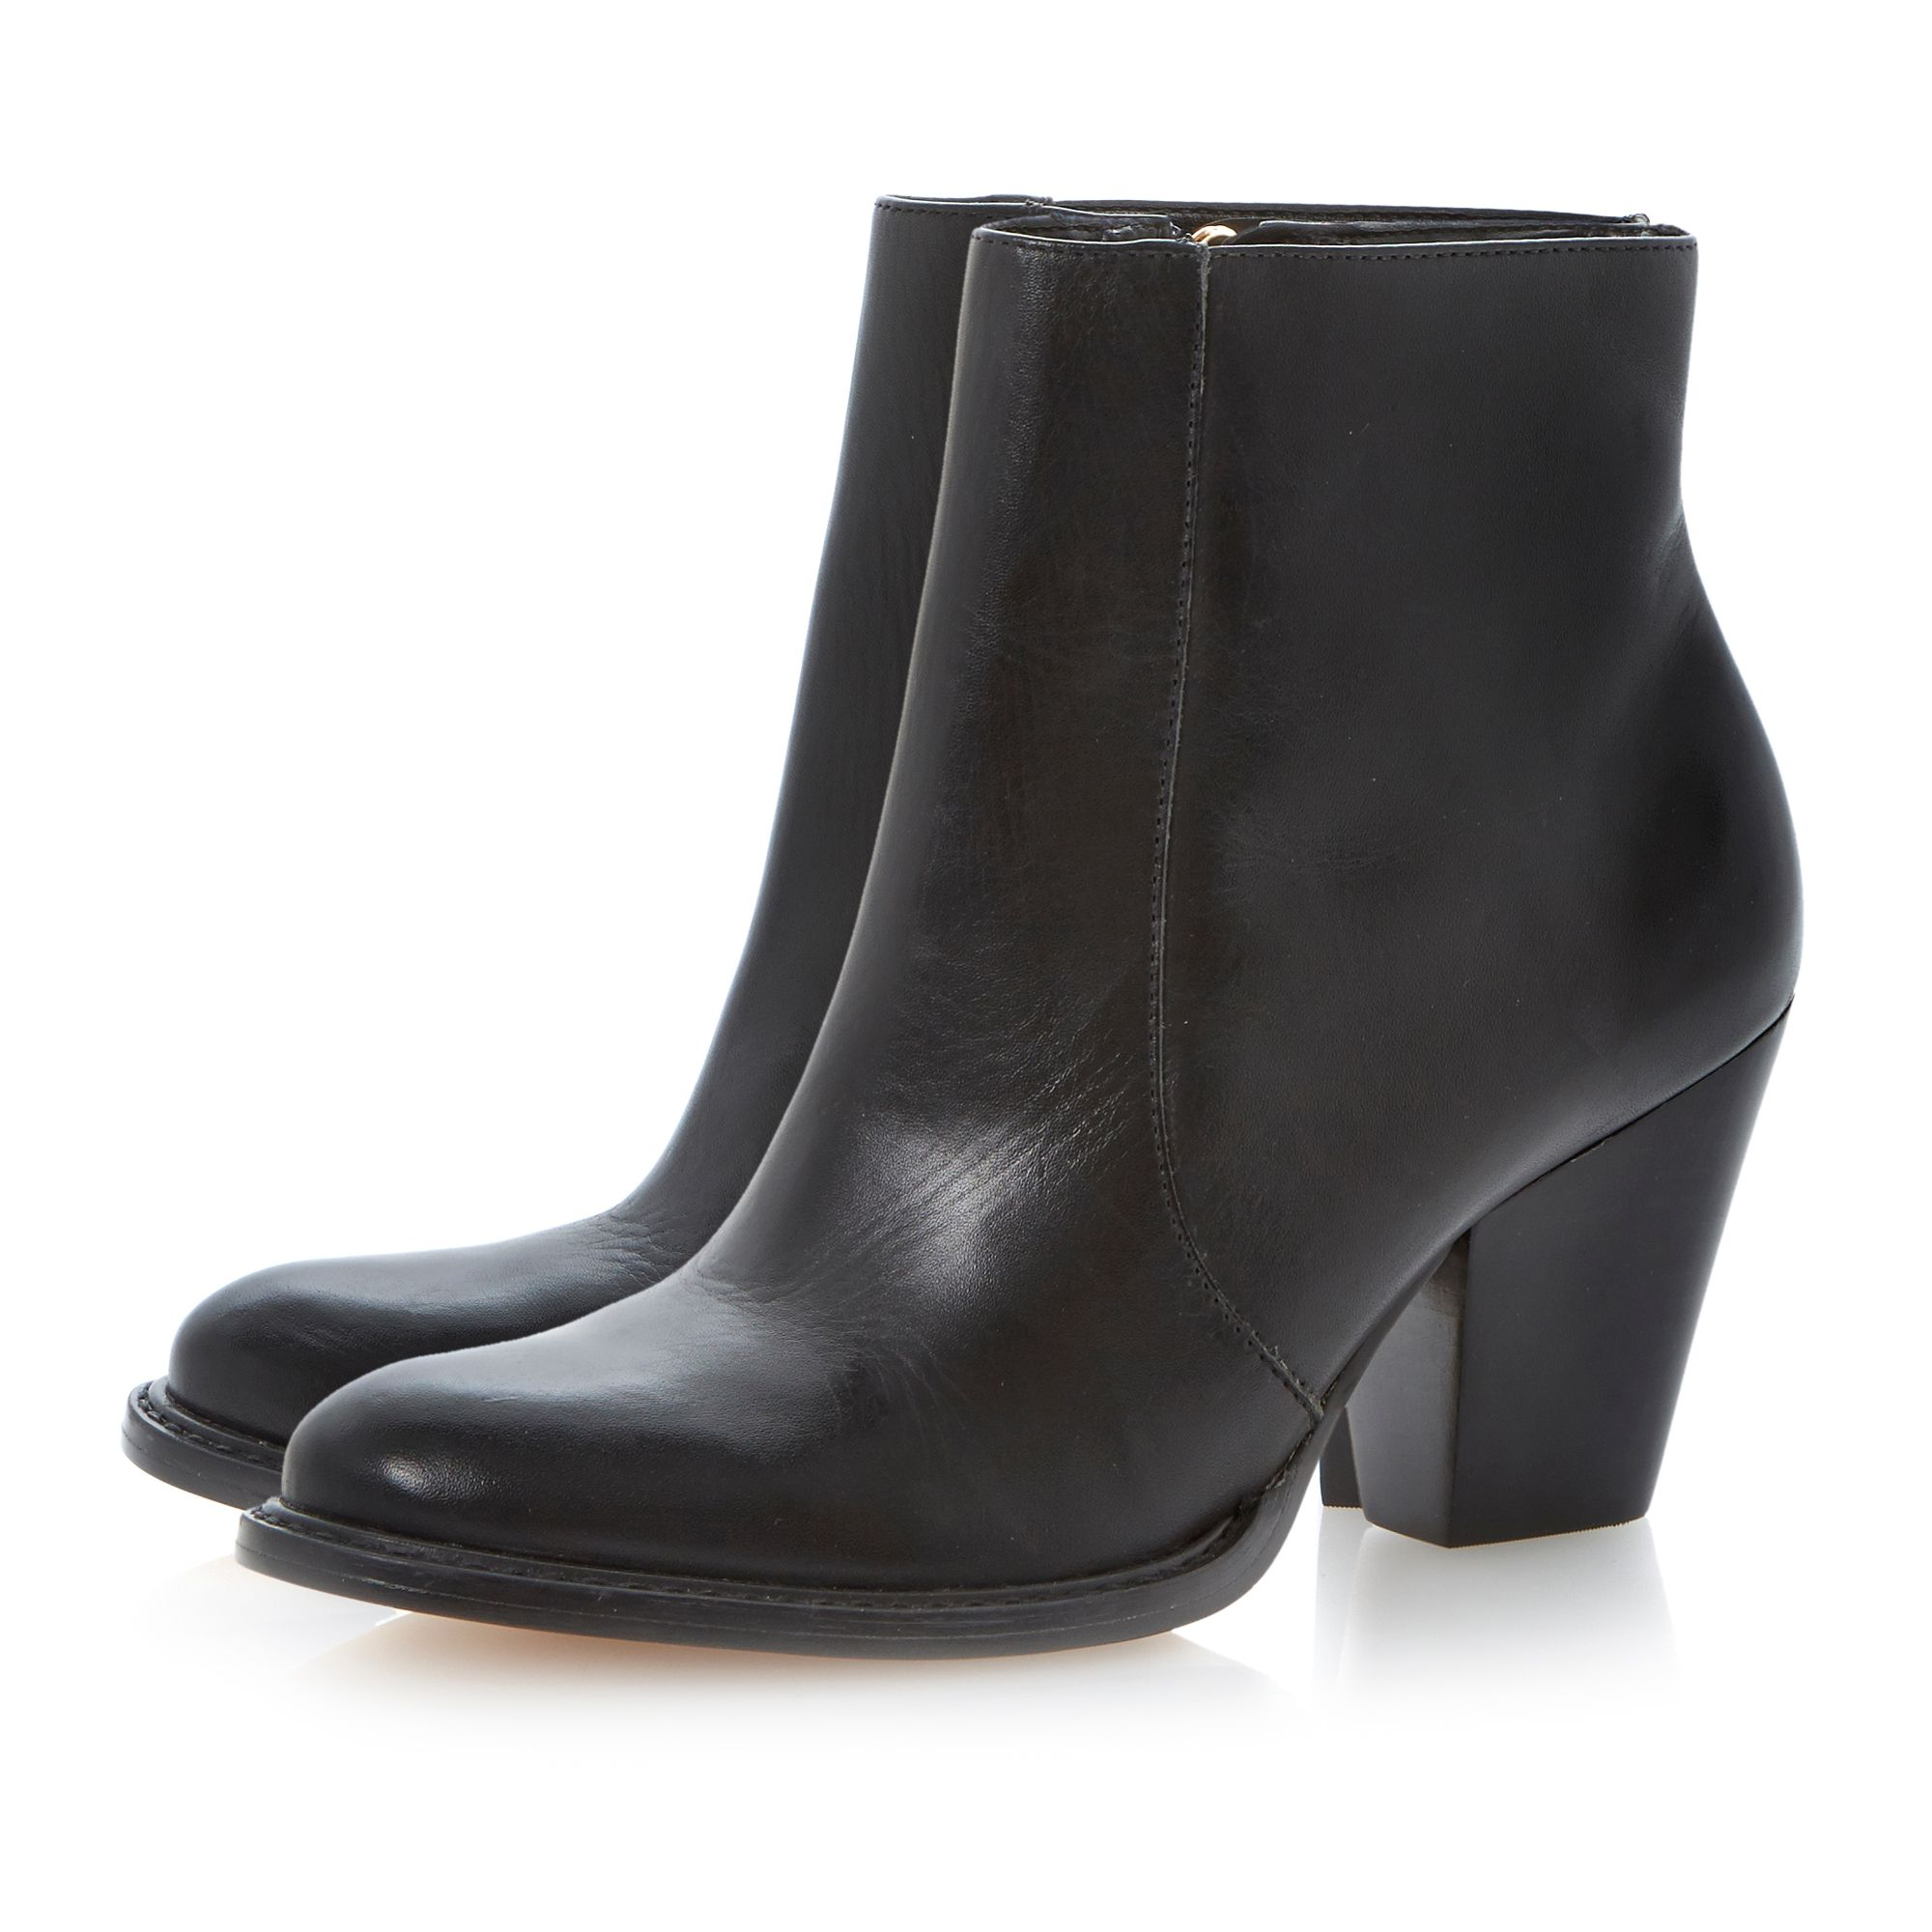 Pemba leather almond toe stacked heel boots